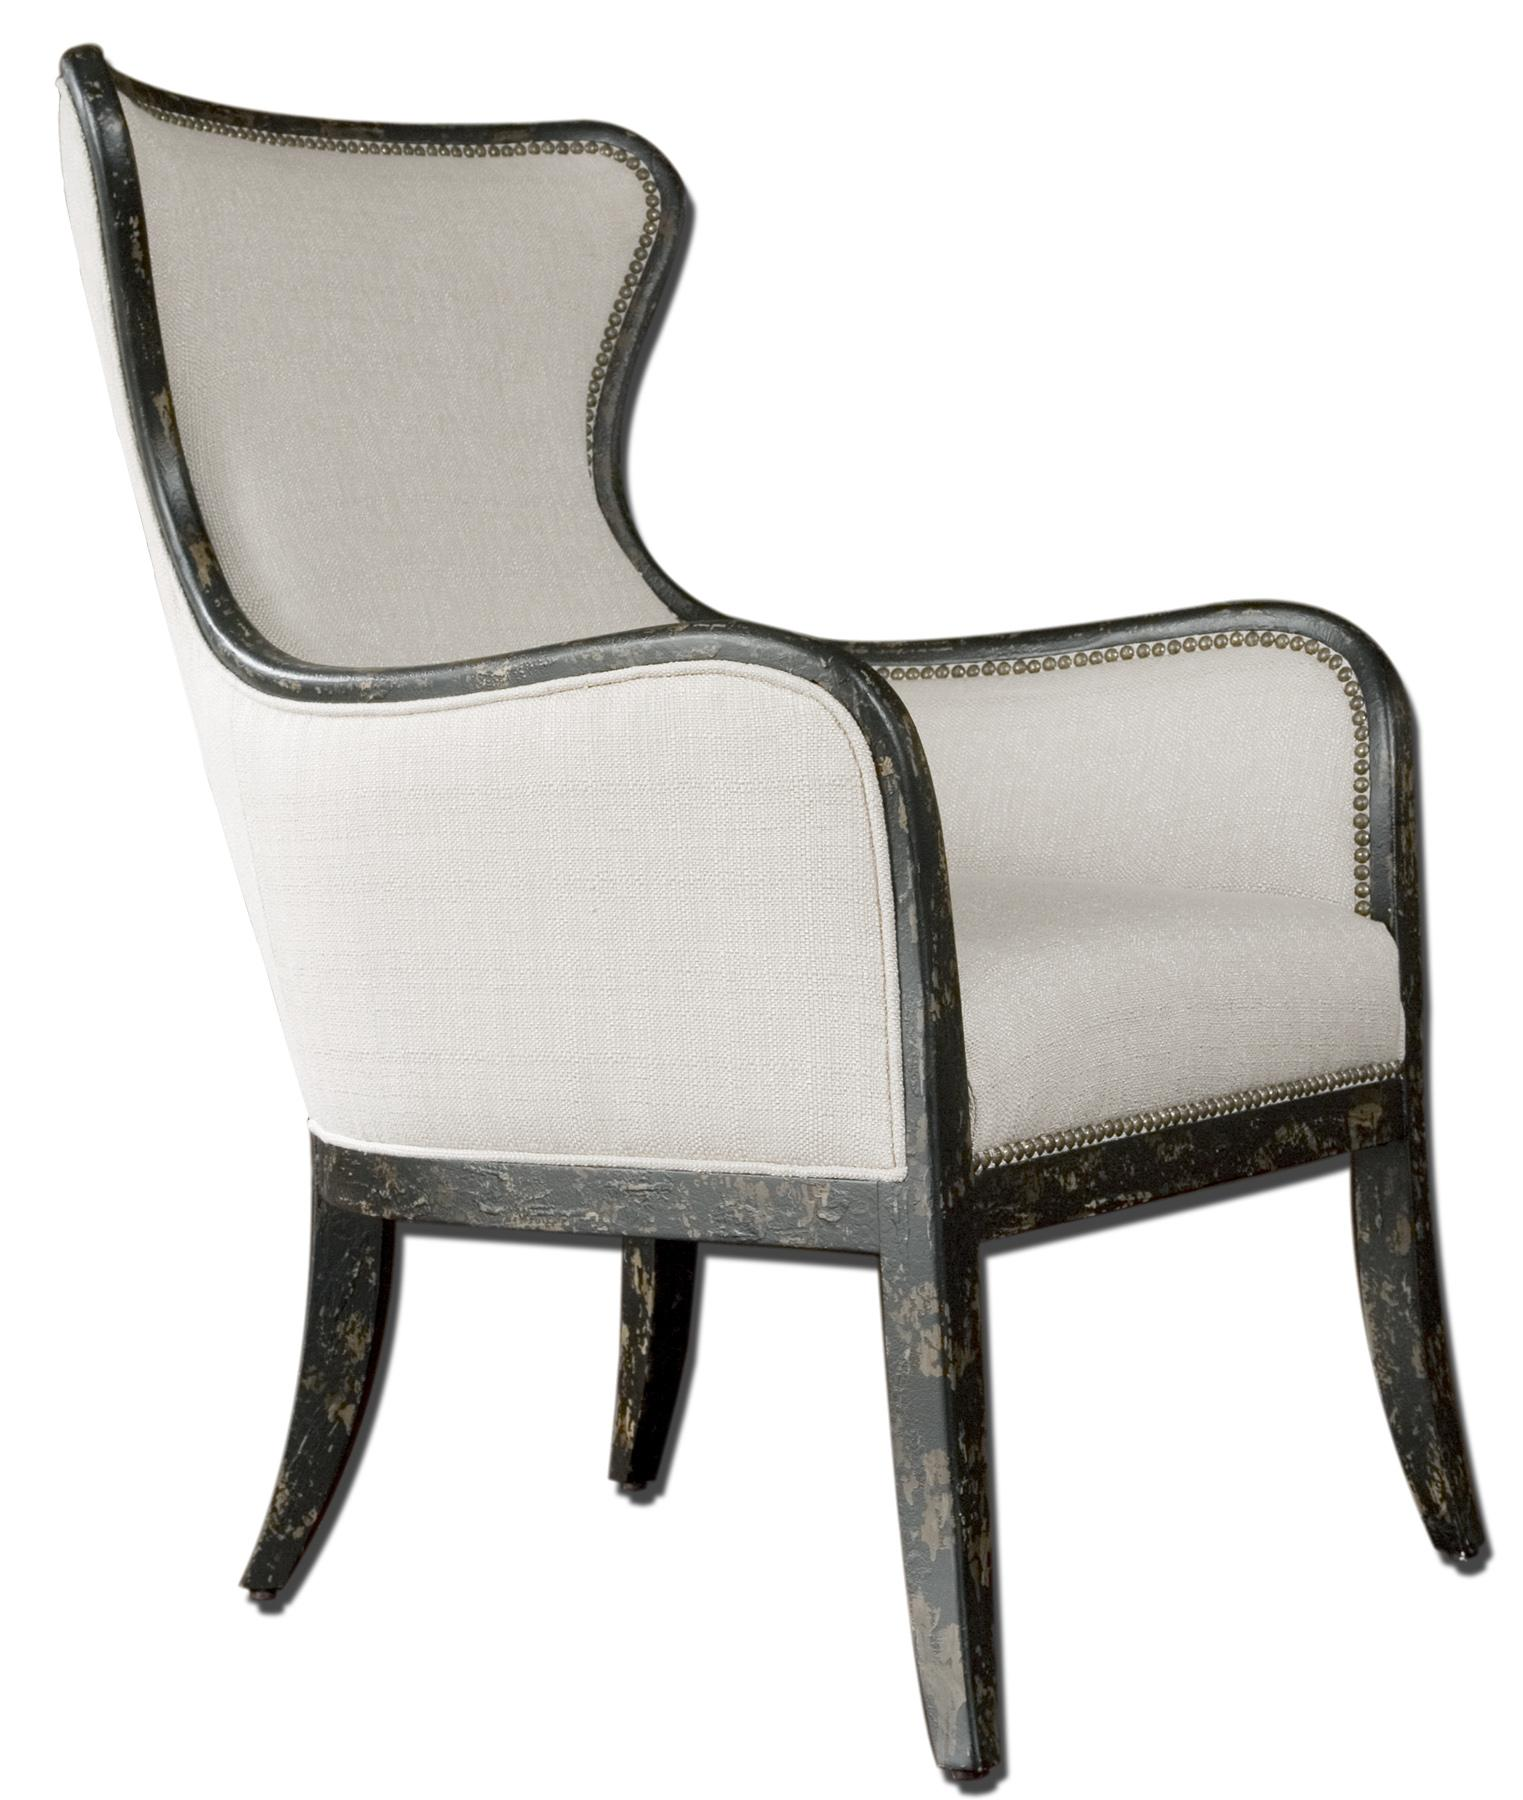 Accent Furniture - Accent Chairs Sandy Wing Chair by Uttermost at Upper Room Home Furnishings